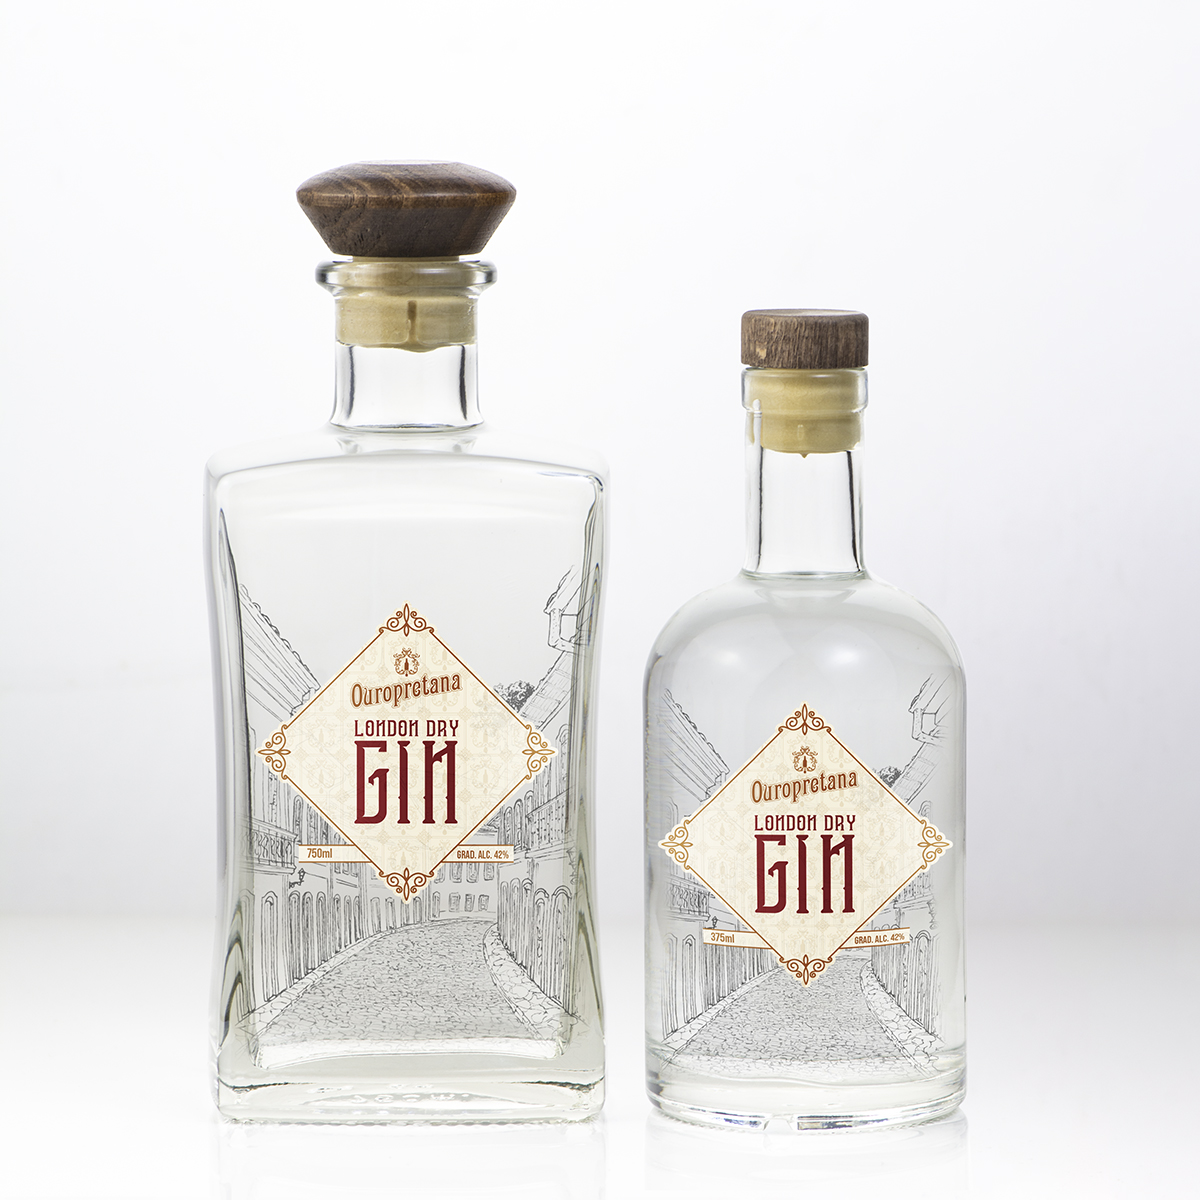 Gin London Dry Ouropretana